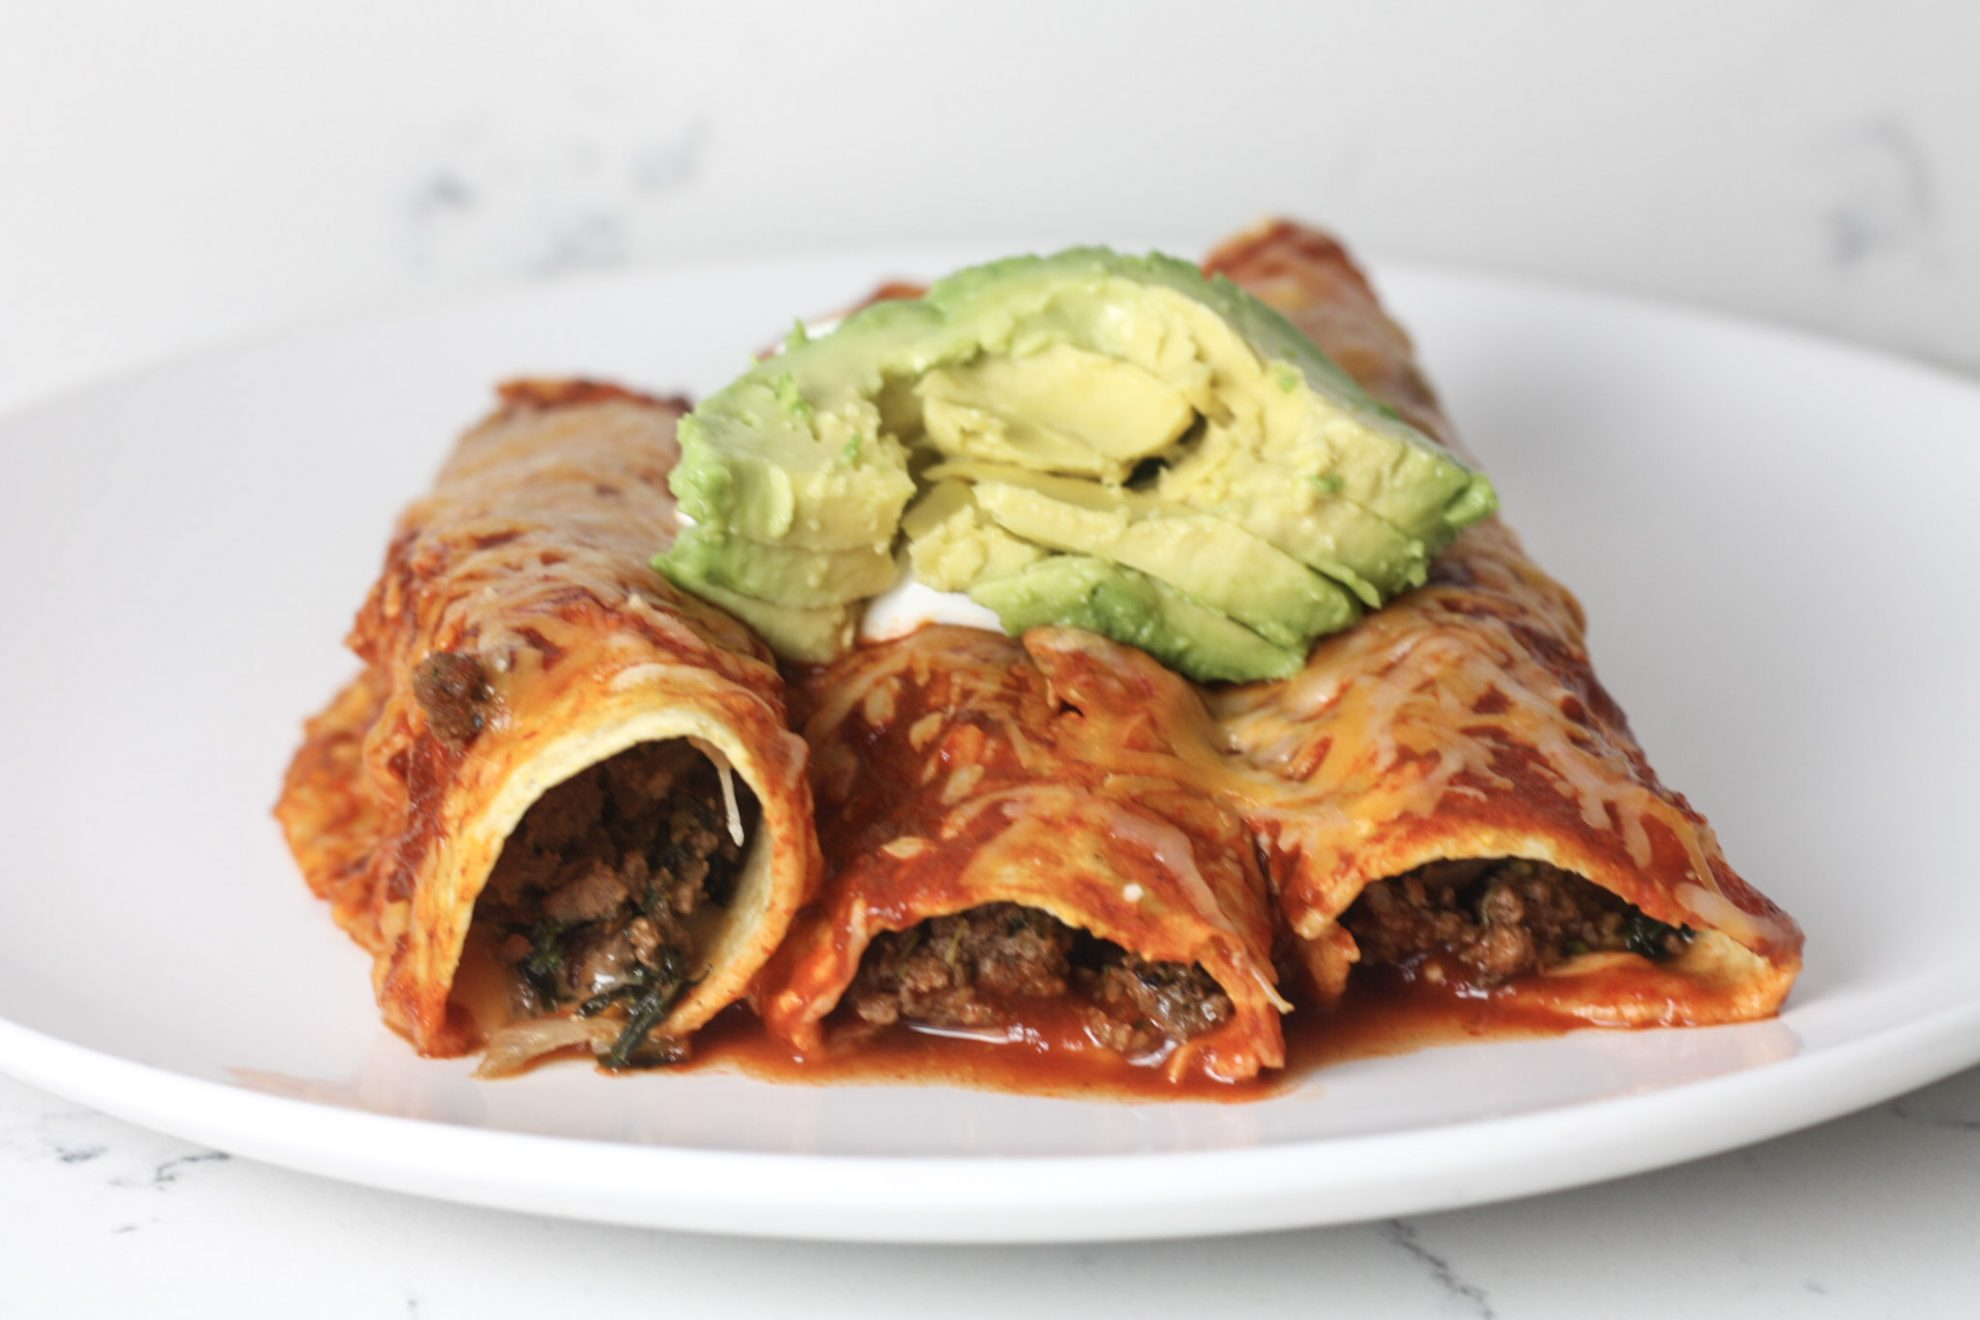 Beef & Vegetable Enchiladas recipe | Healthy enchiladas made with vegetables and ground beef | mincerepublic.com